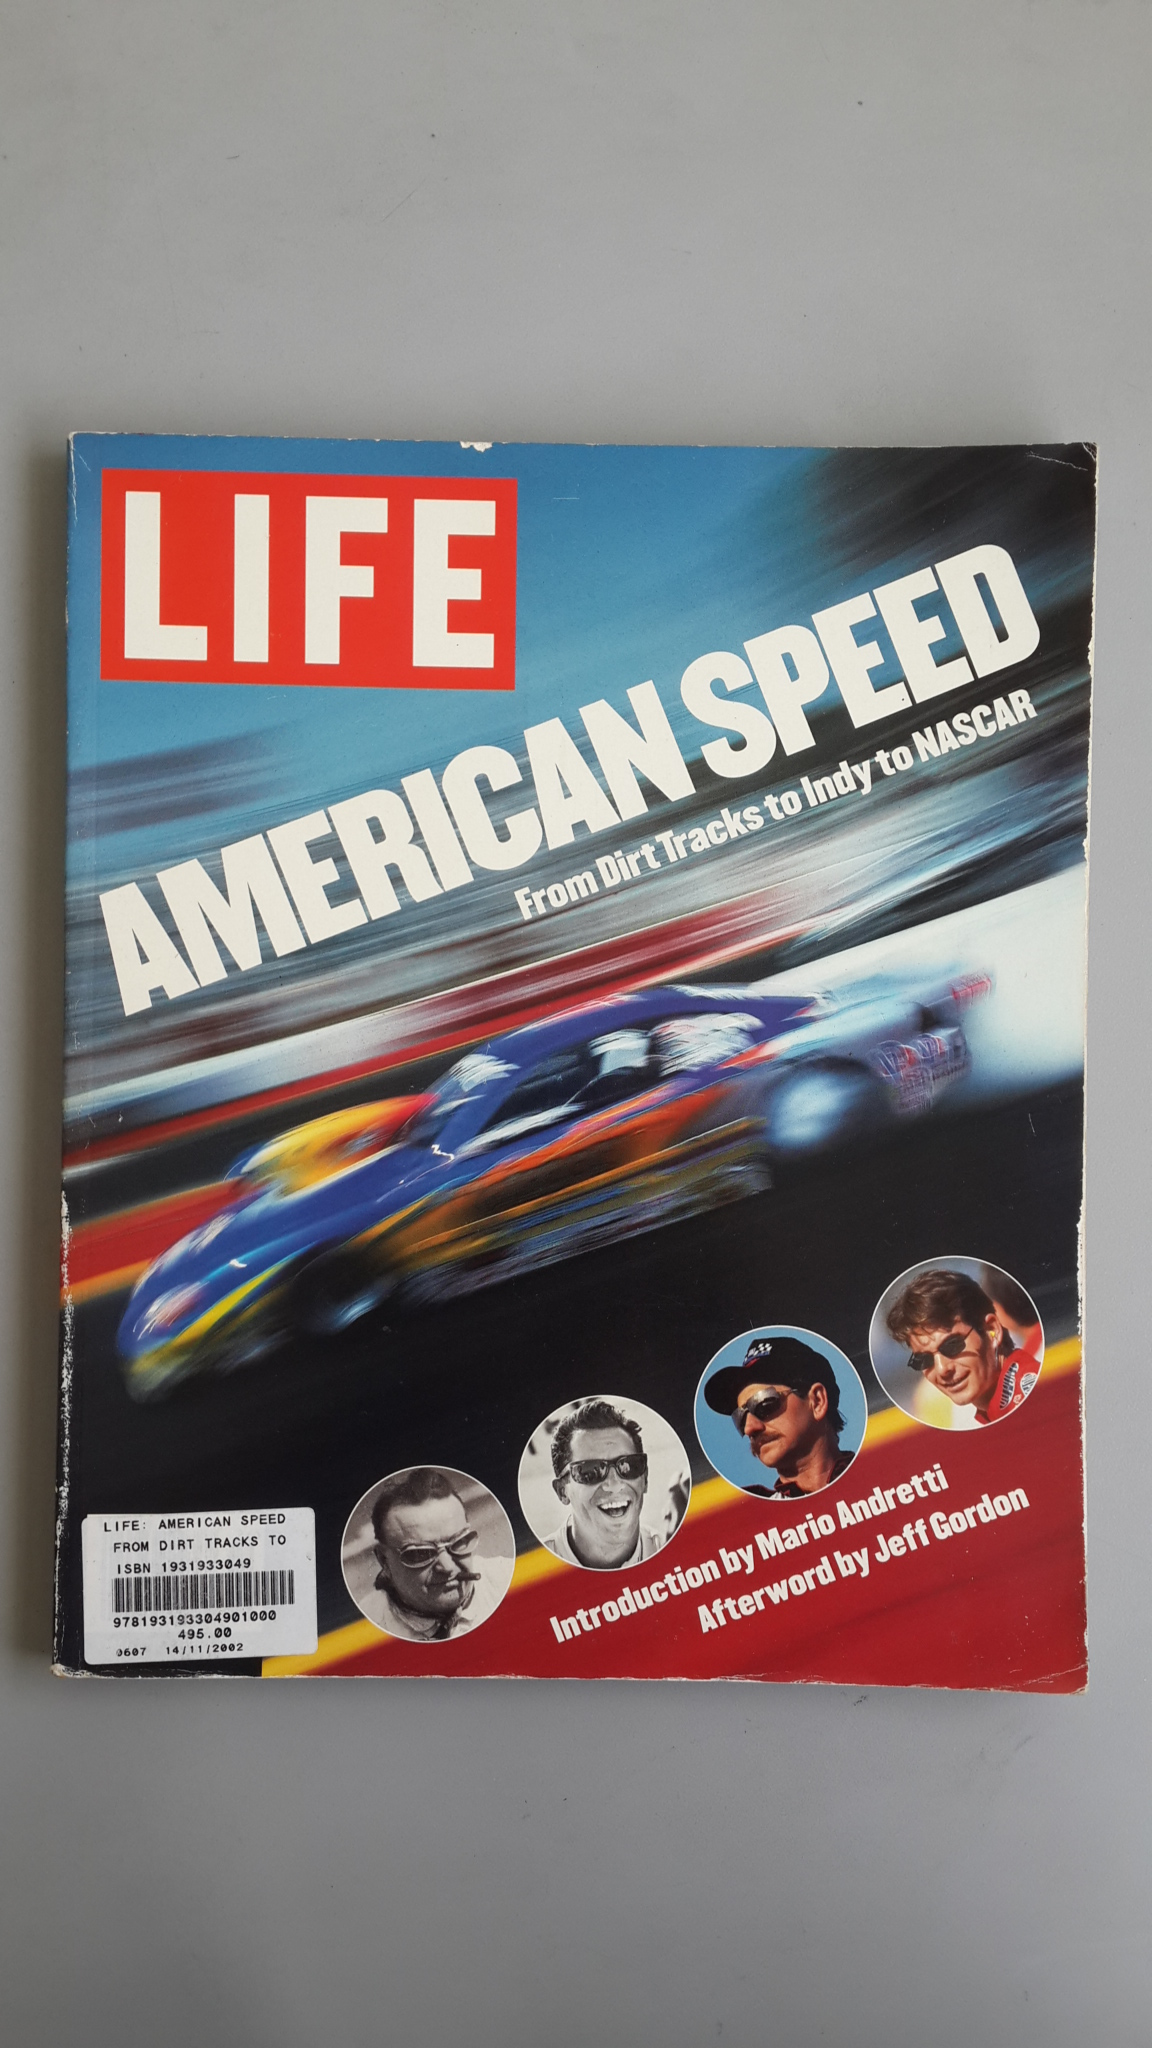 AMERICAN SPEED : From Dirt tracks to lndyto NASCAR / LIFE